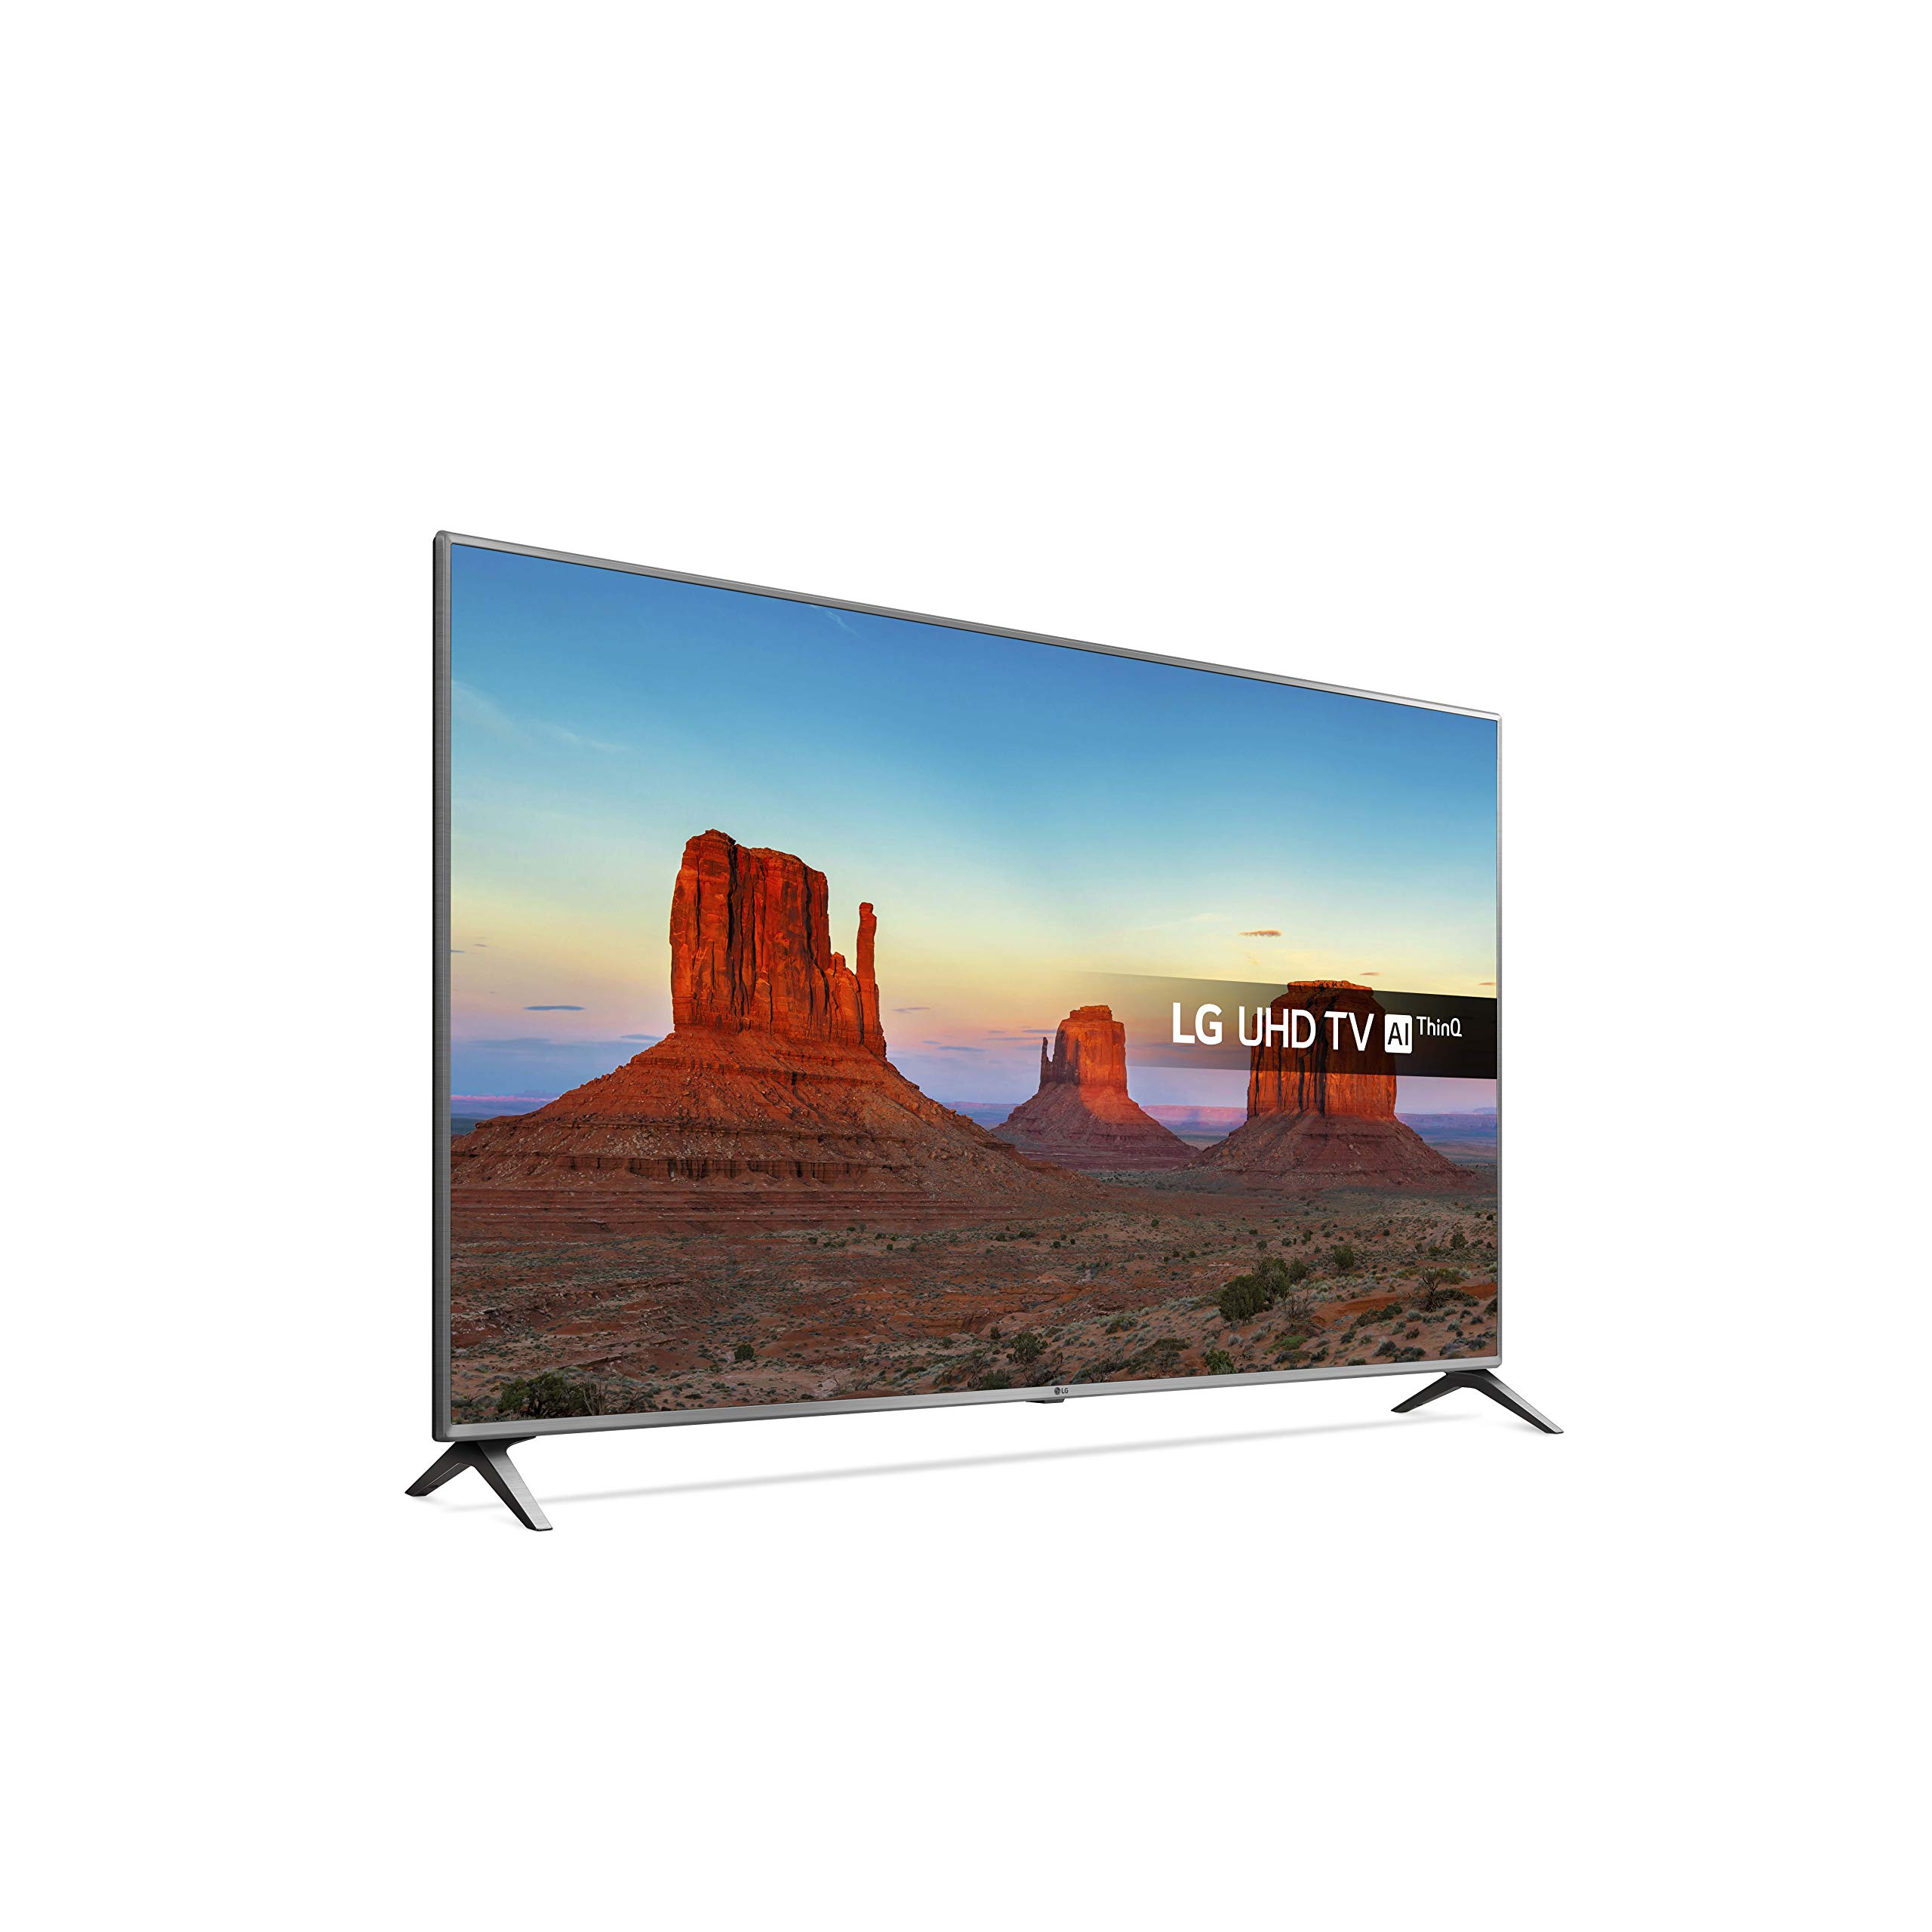 TV 65 LED LG 65UK6500PLA 4K UHD 3840*2160 IPS SMARTTV 4HDMI 2USB IA GOOGLE ASSIST: BLOCK: Amazon.es: Electrónica